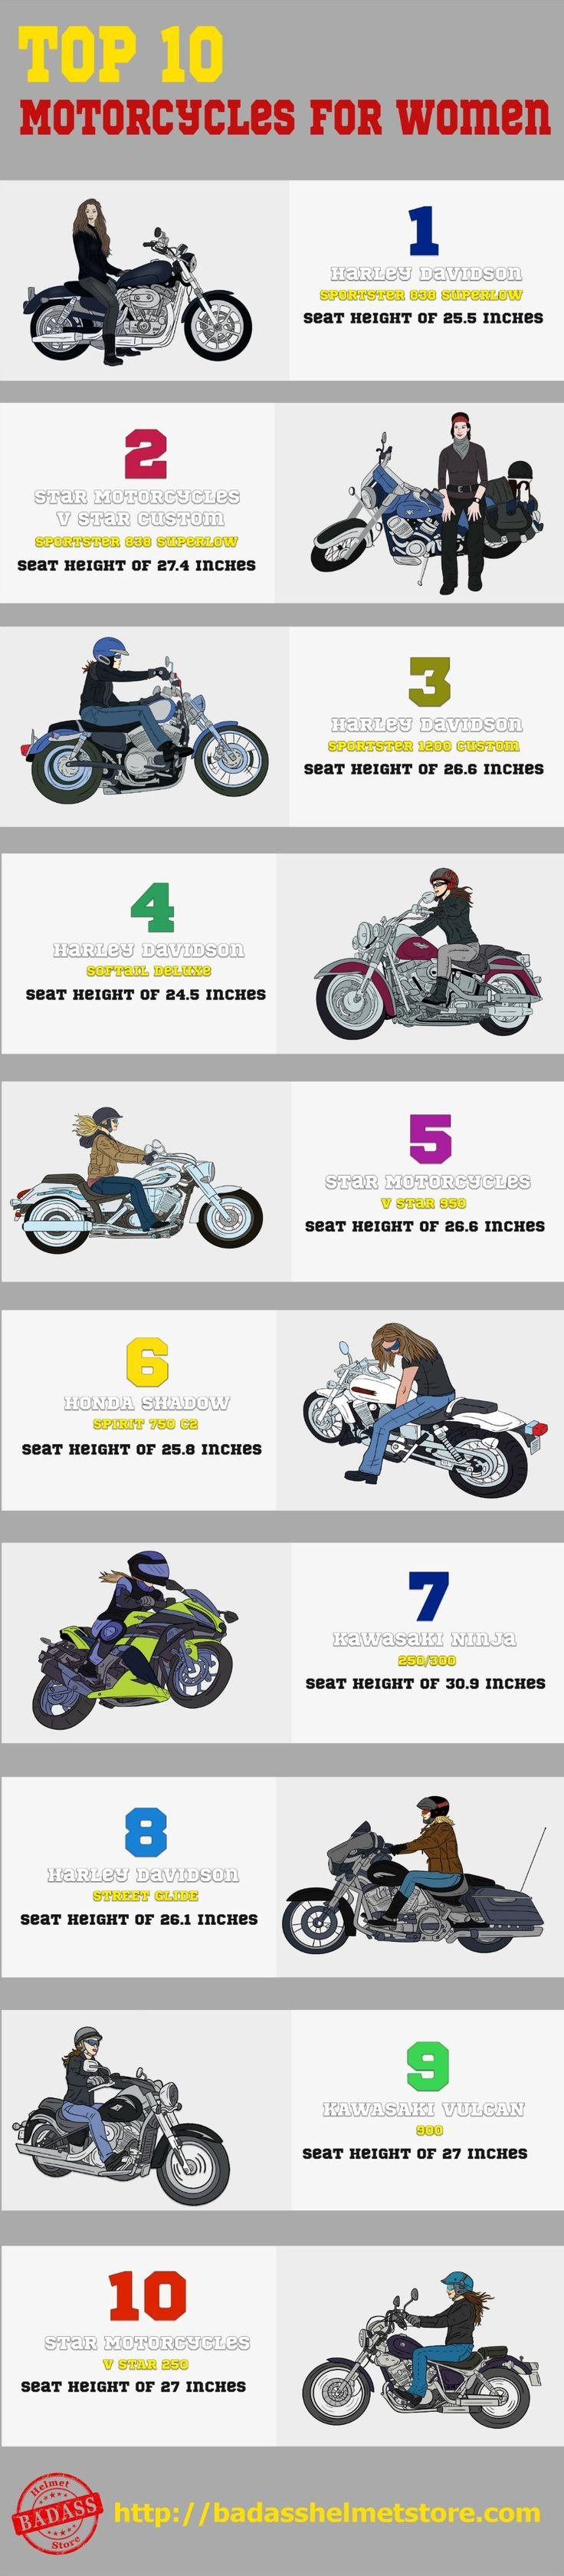 This top ten motorcycles for women infographics takes into account both new and older models. It uses more than just seat dimensions to judge too. We have attempted to include a diverse range of vehicles, by considering different models, budgets, engine features, and brands. For all of these motorcycles, vehicle weight has been taken into consideration too. Clearly, lighter motorcycles are easier to ride, no matter whether you are male or female. #infographics #topsforwomen